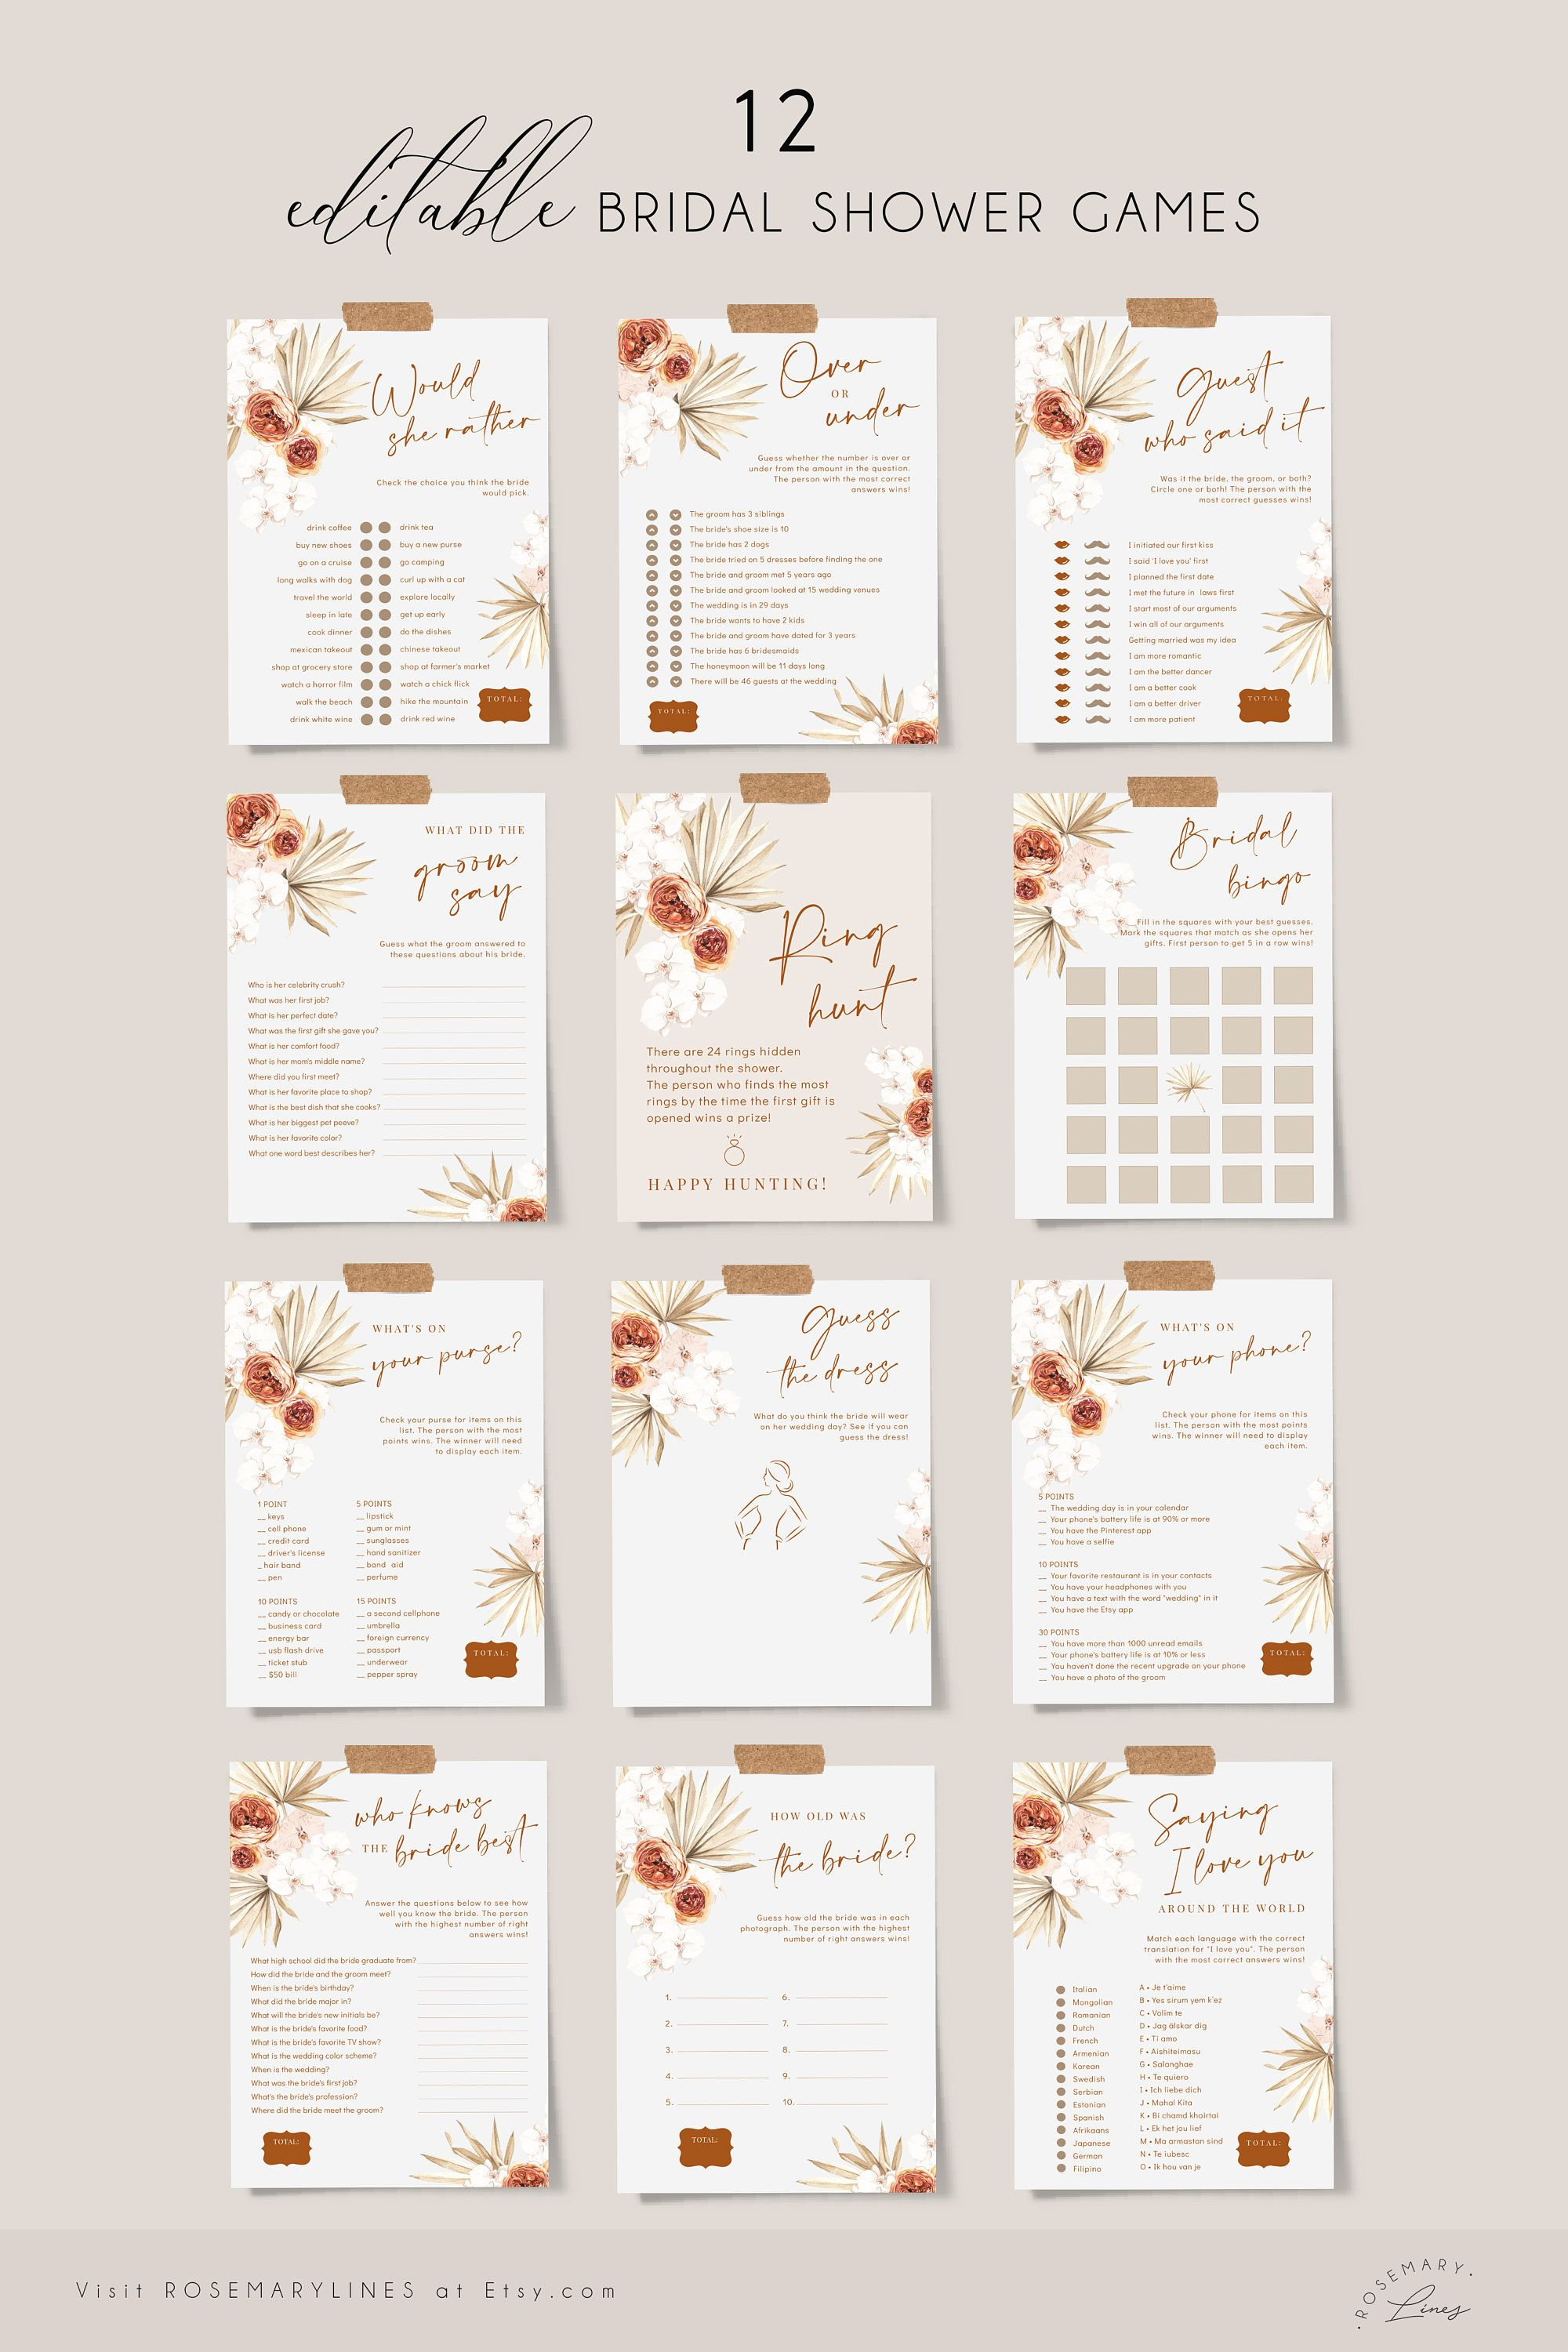 Free Printable Palm Tree Name Tags The Template Can Also Be Used For Creating Items Like Labels And Place Cards Name Tag Templates Tag Template Free Name Tags